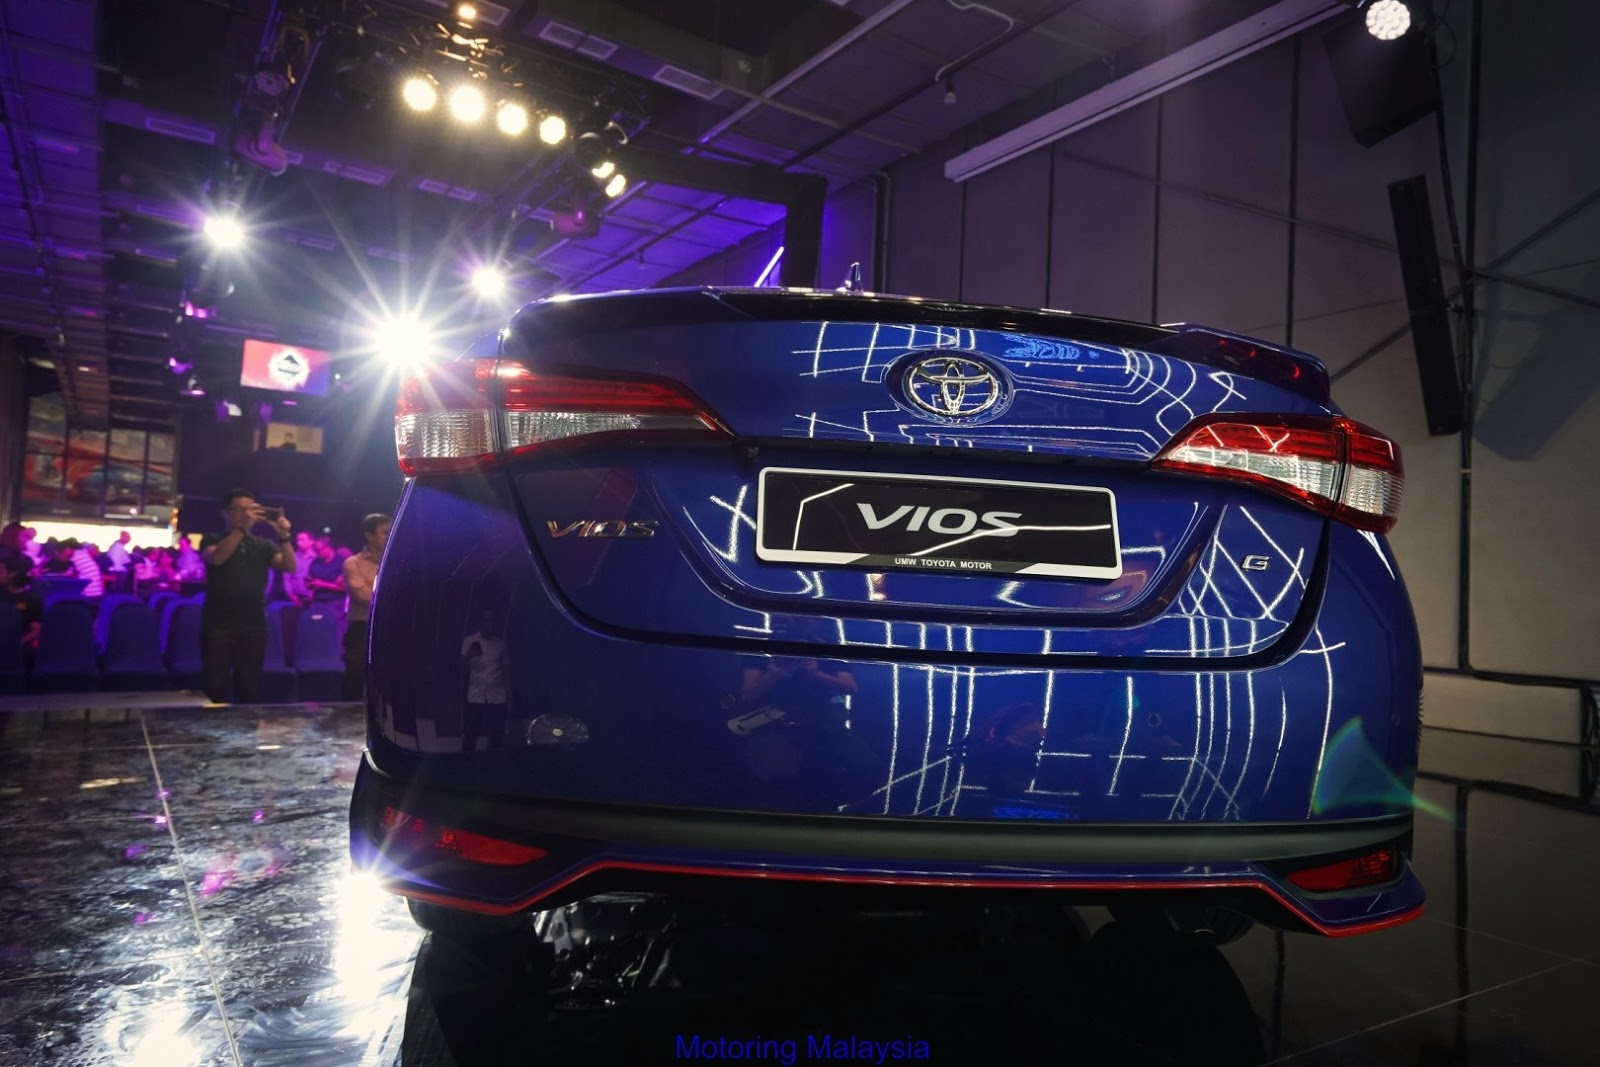 Motoring-Malaysia: All New Toyota Vios Officially Launched